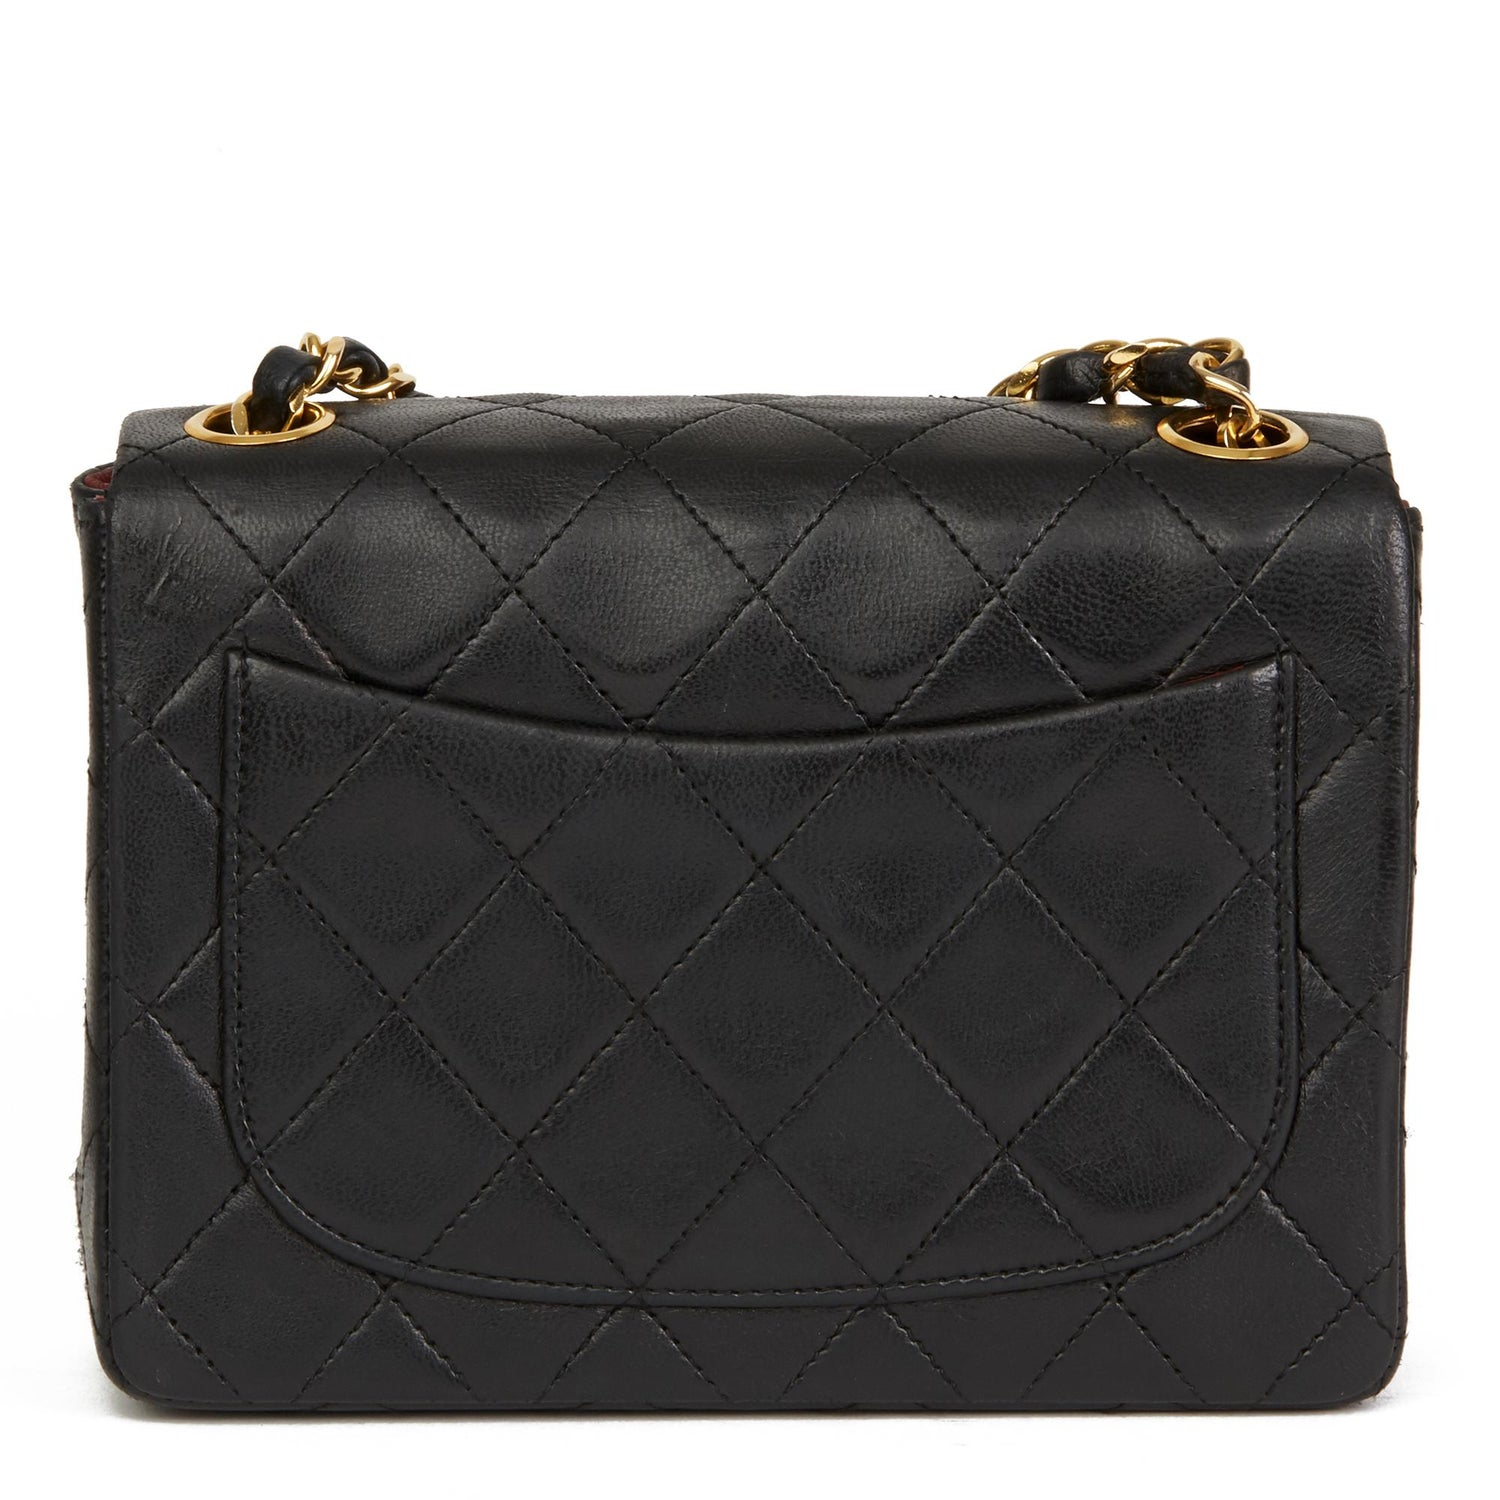 c36ee143ad1746 1989 Chanel Black Quilted Lambskin Vintage Mini Flap Bag For Sale at 1stdibs